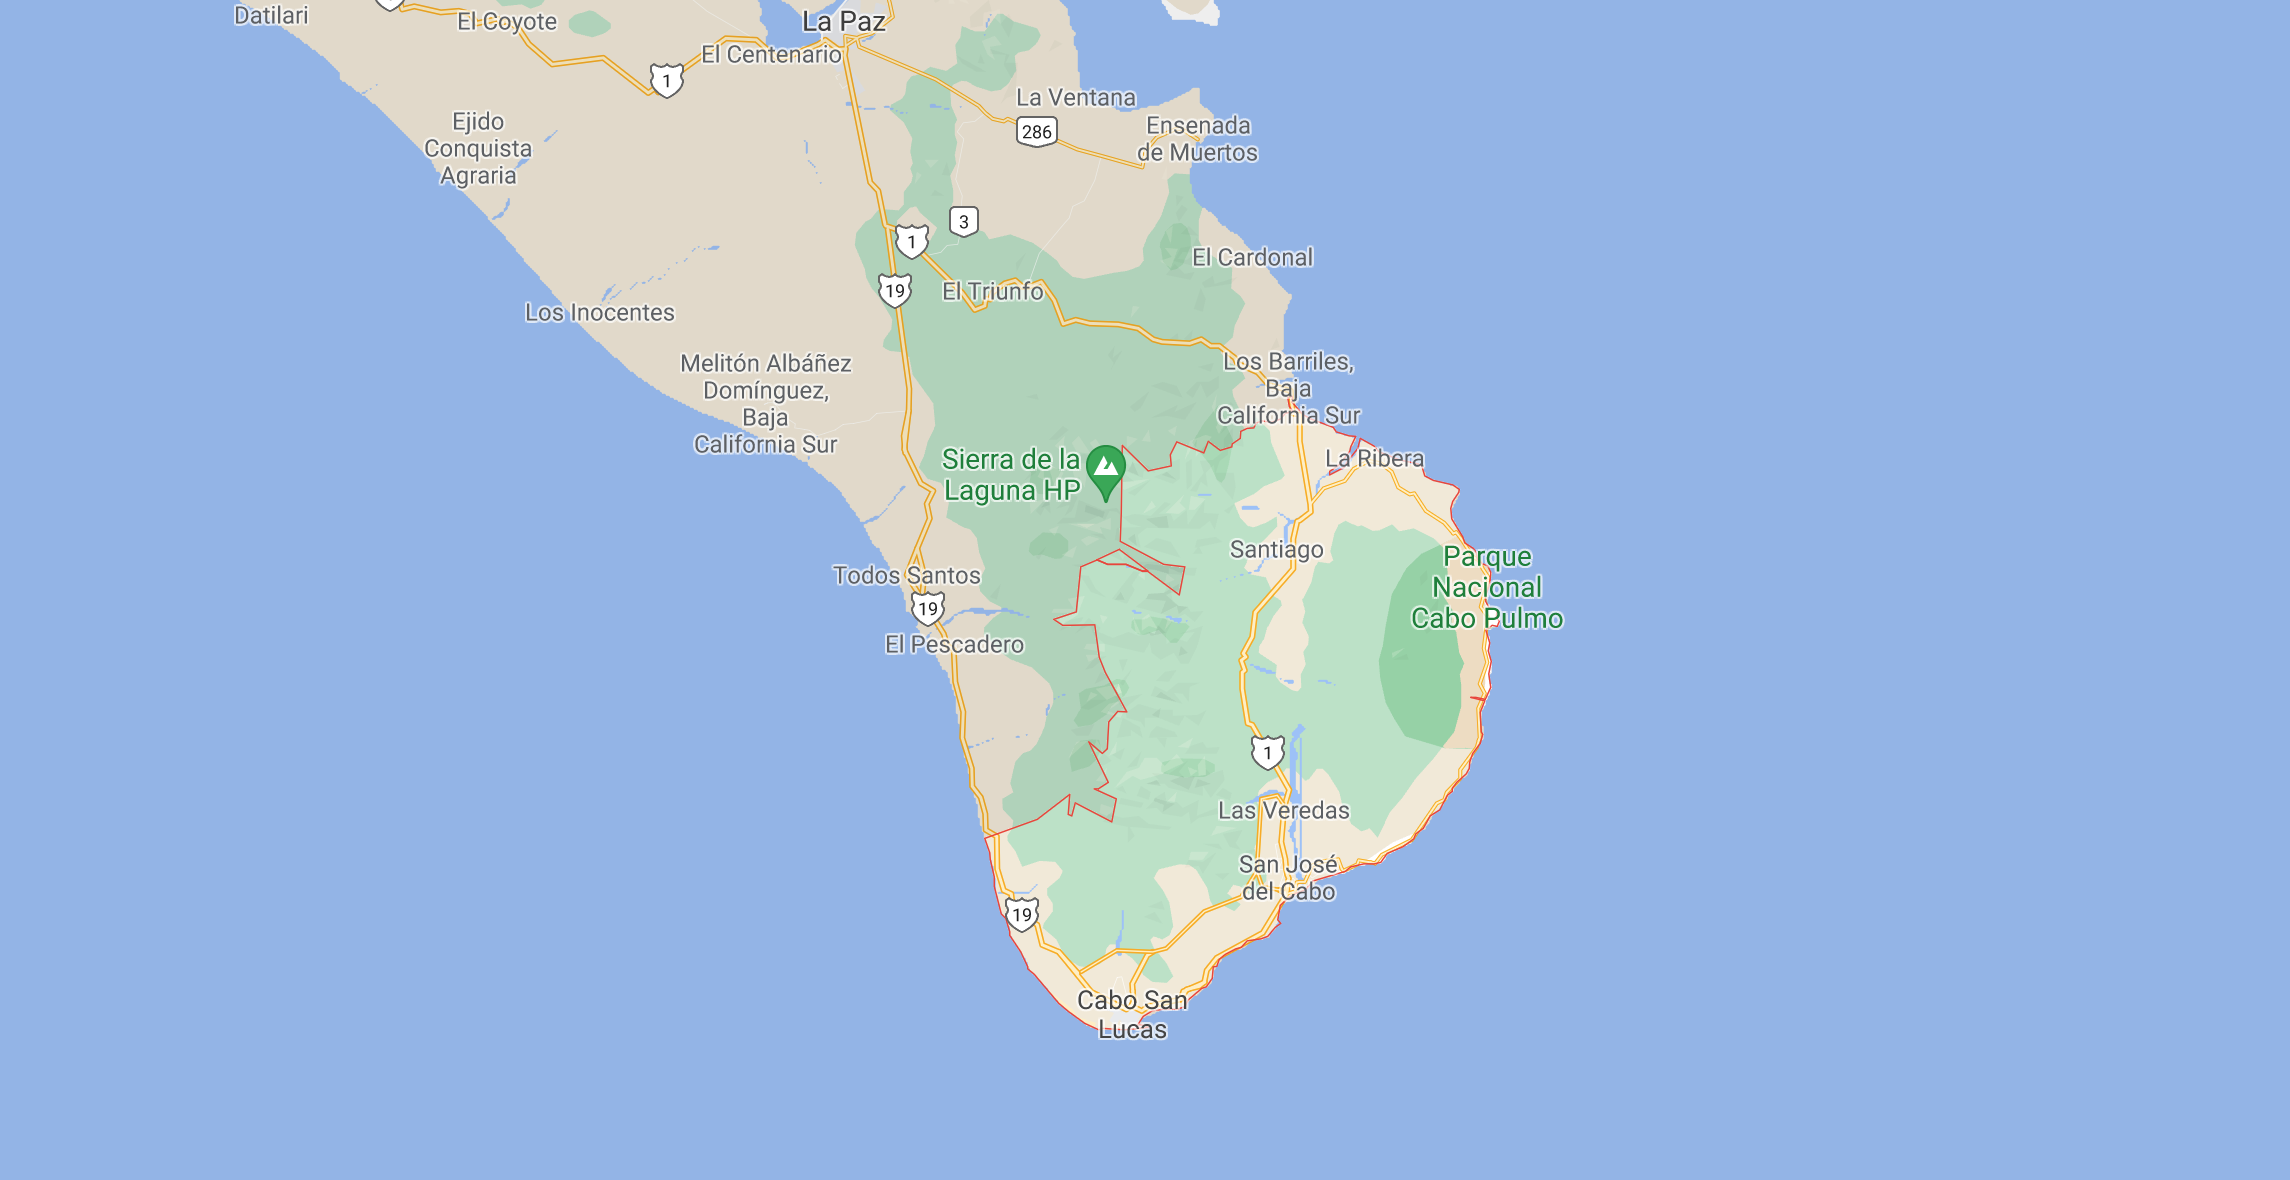 los cabos zoomed in on a map